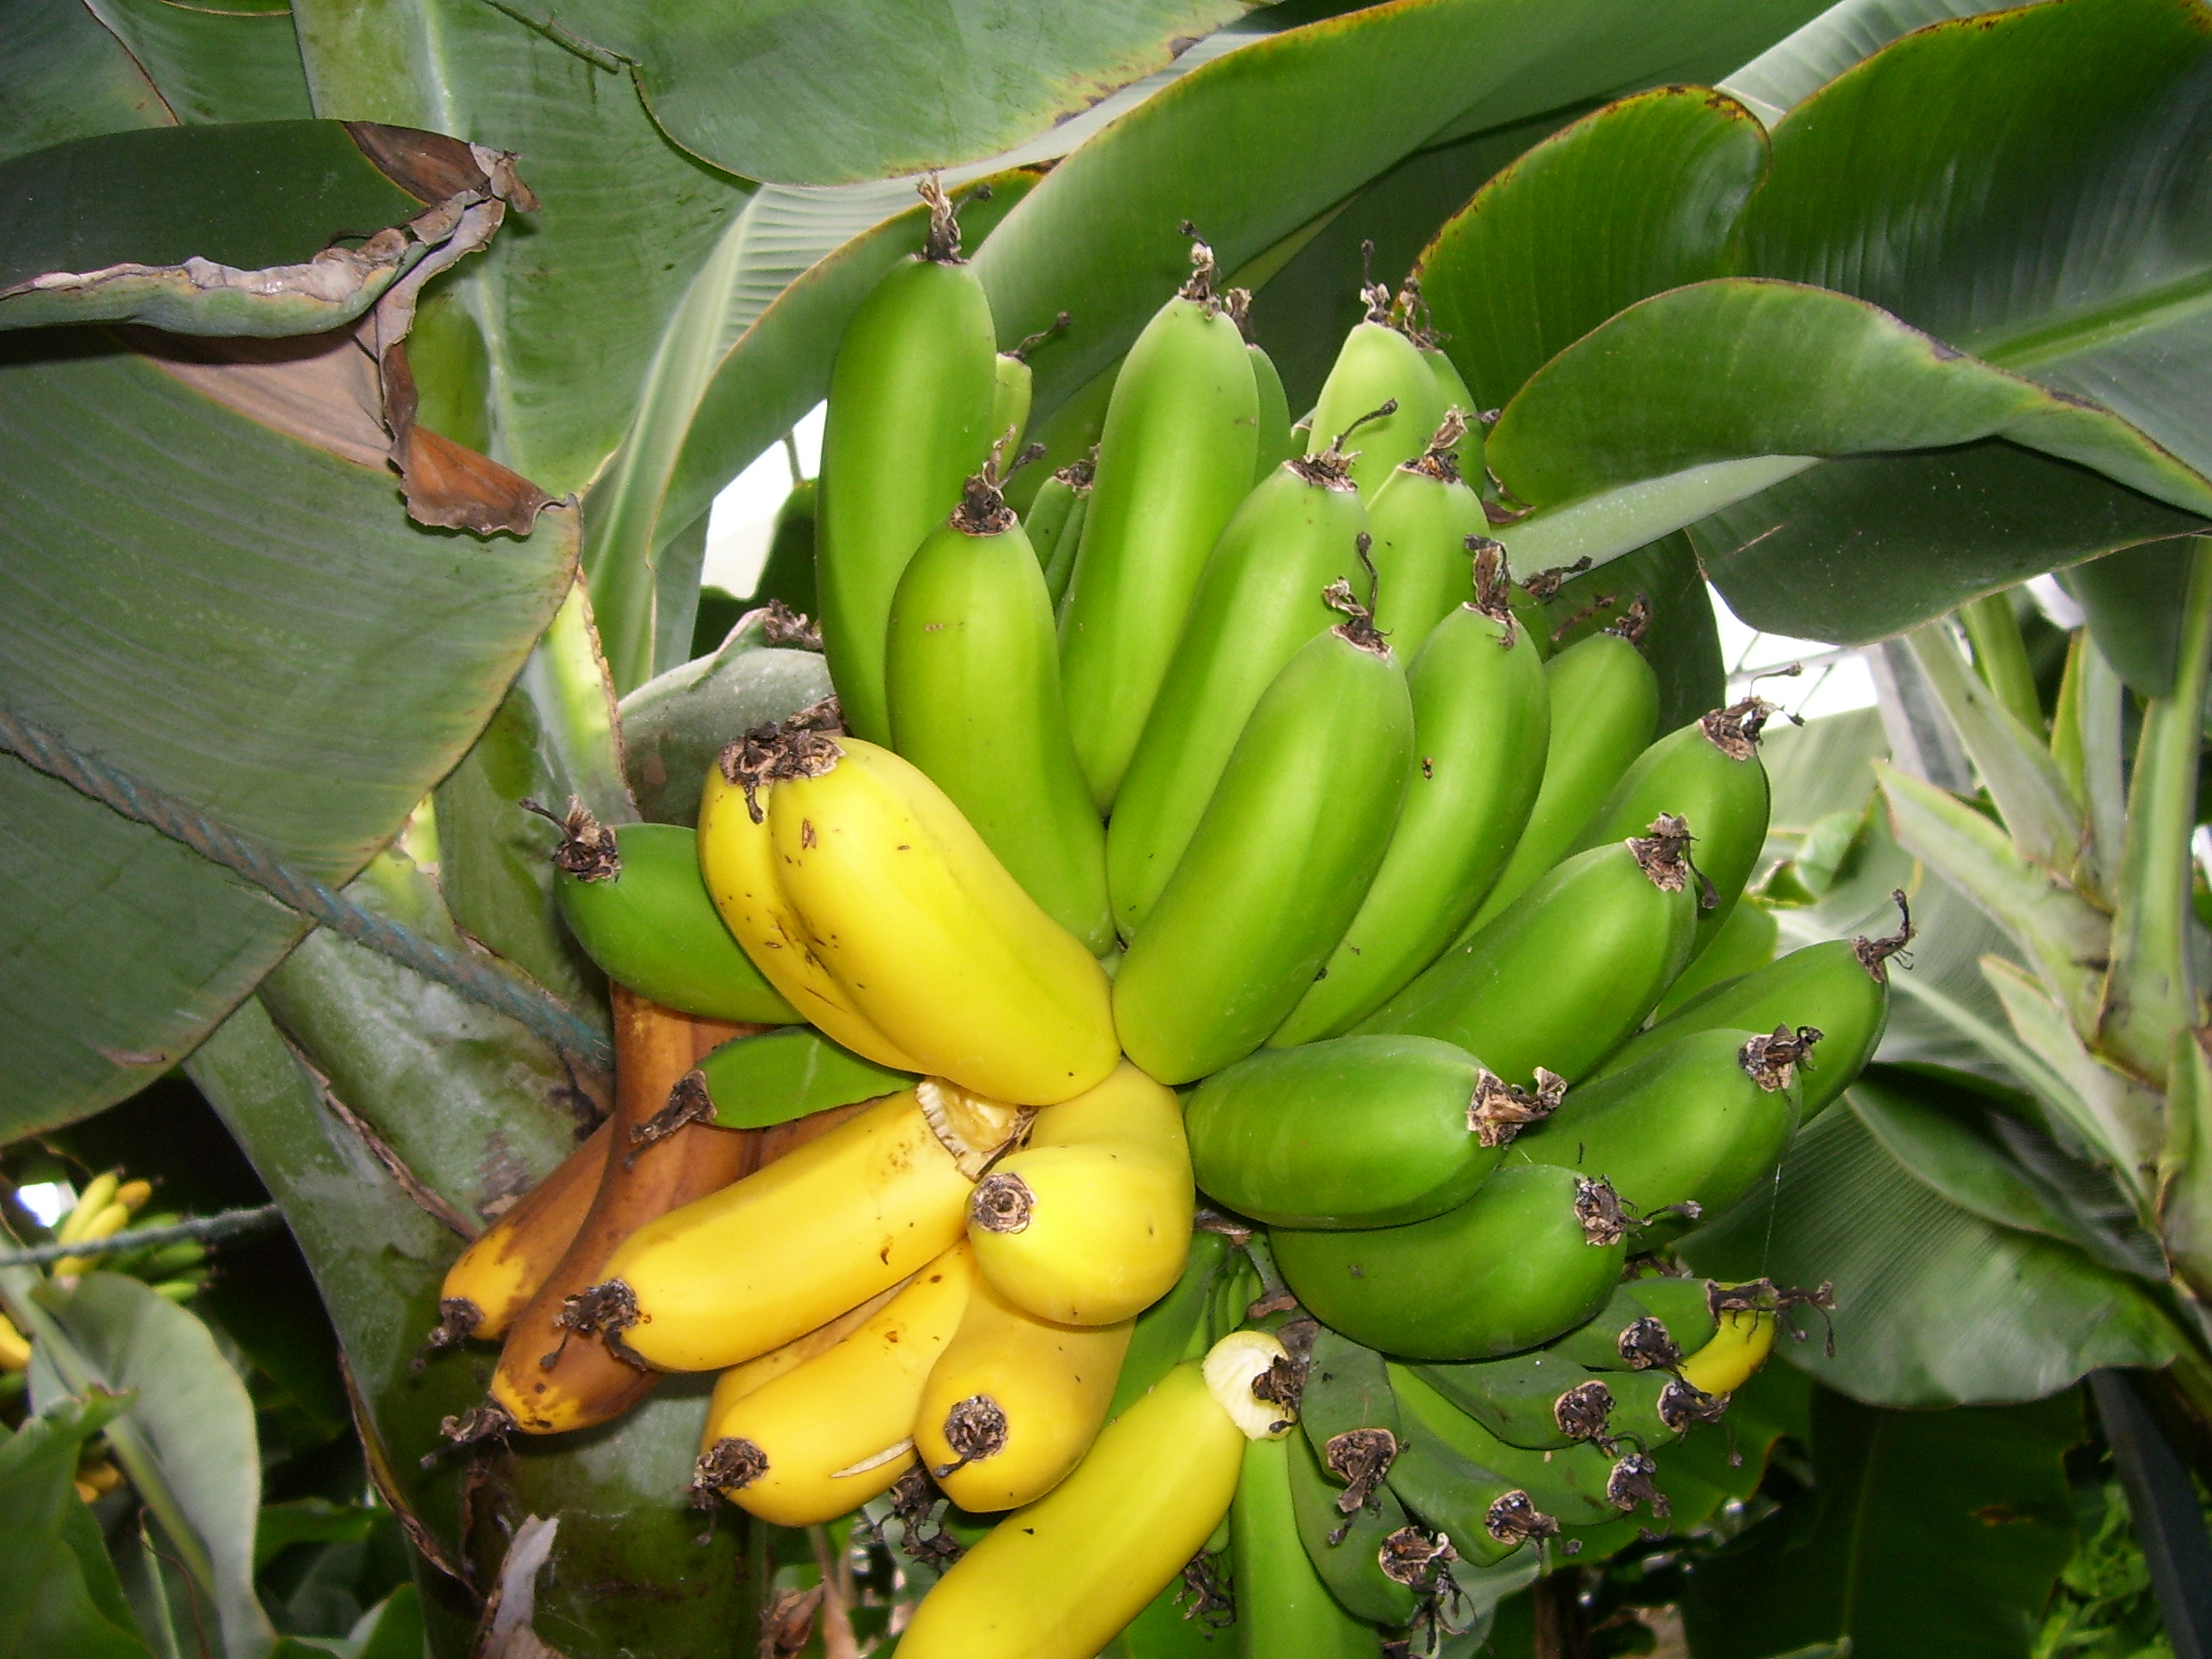 Banana production in Iceland - Wikipedia